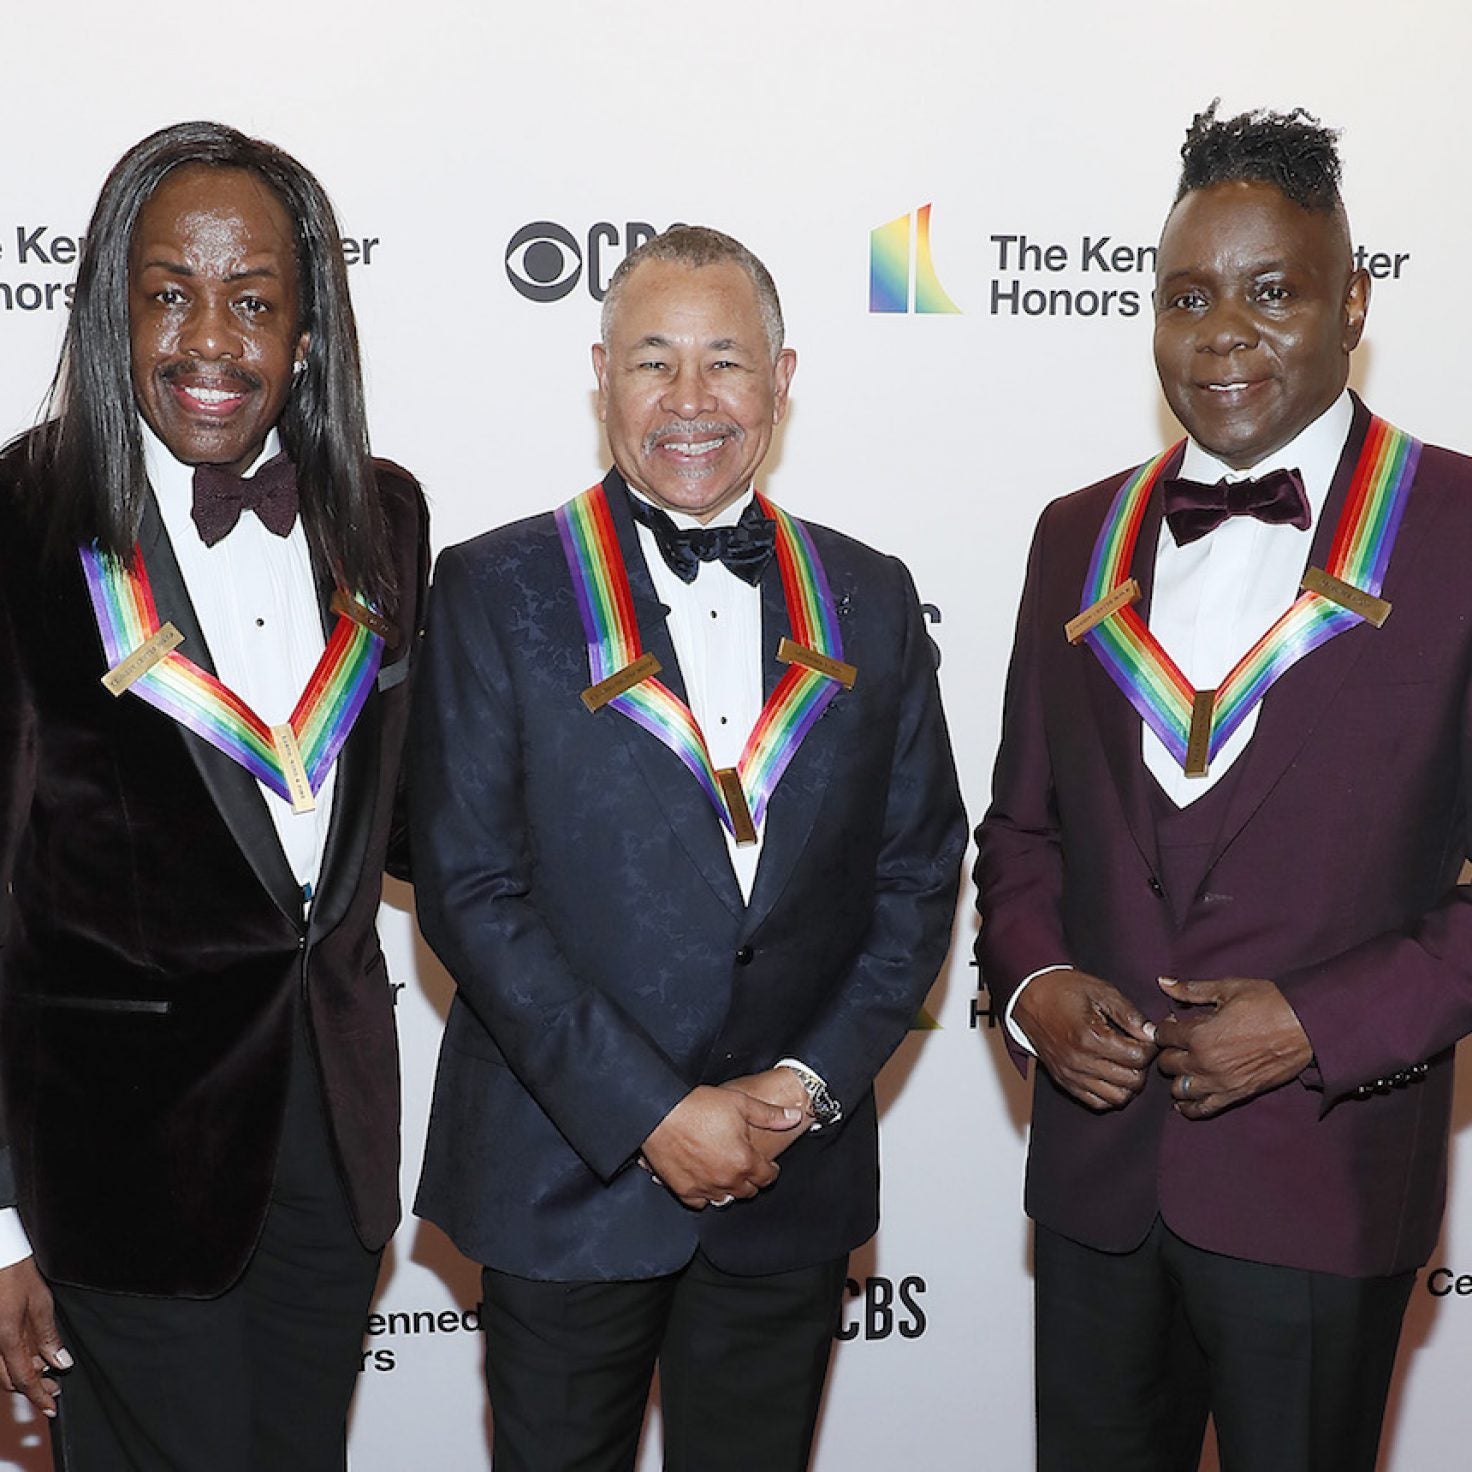 Earth, Wind & Fire Make History As First Black Group Inducted Into Kennedy Center Honors